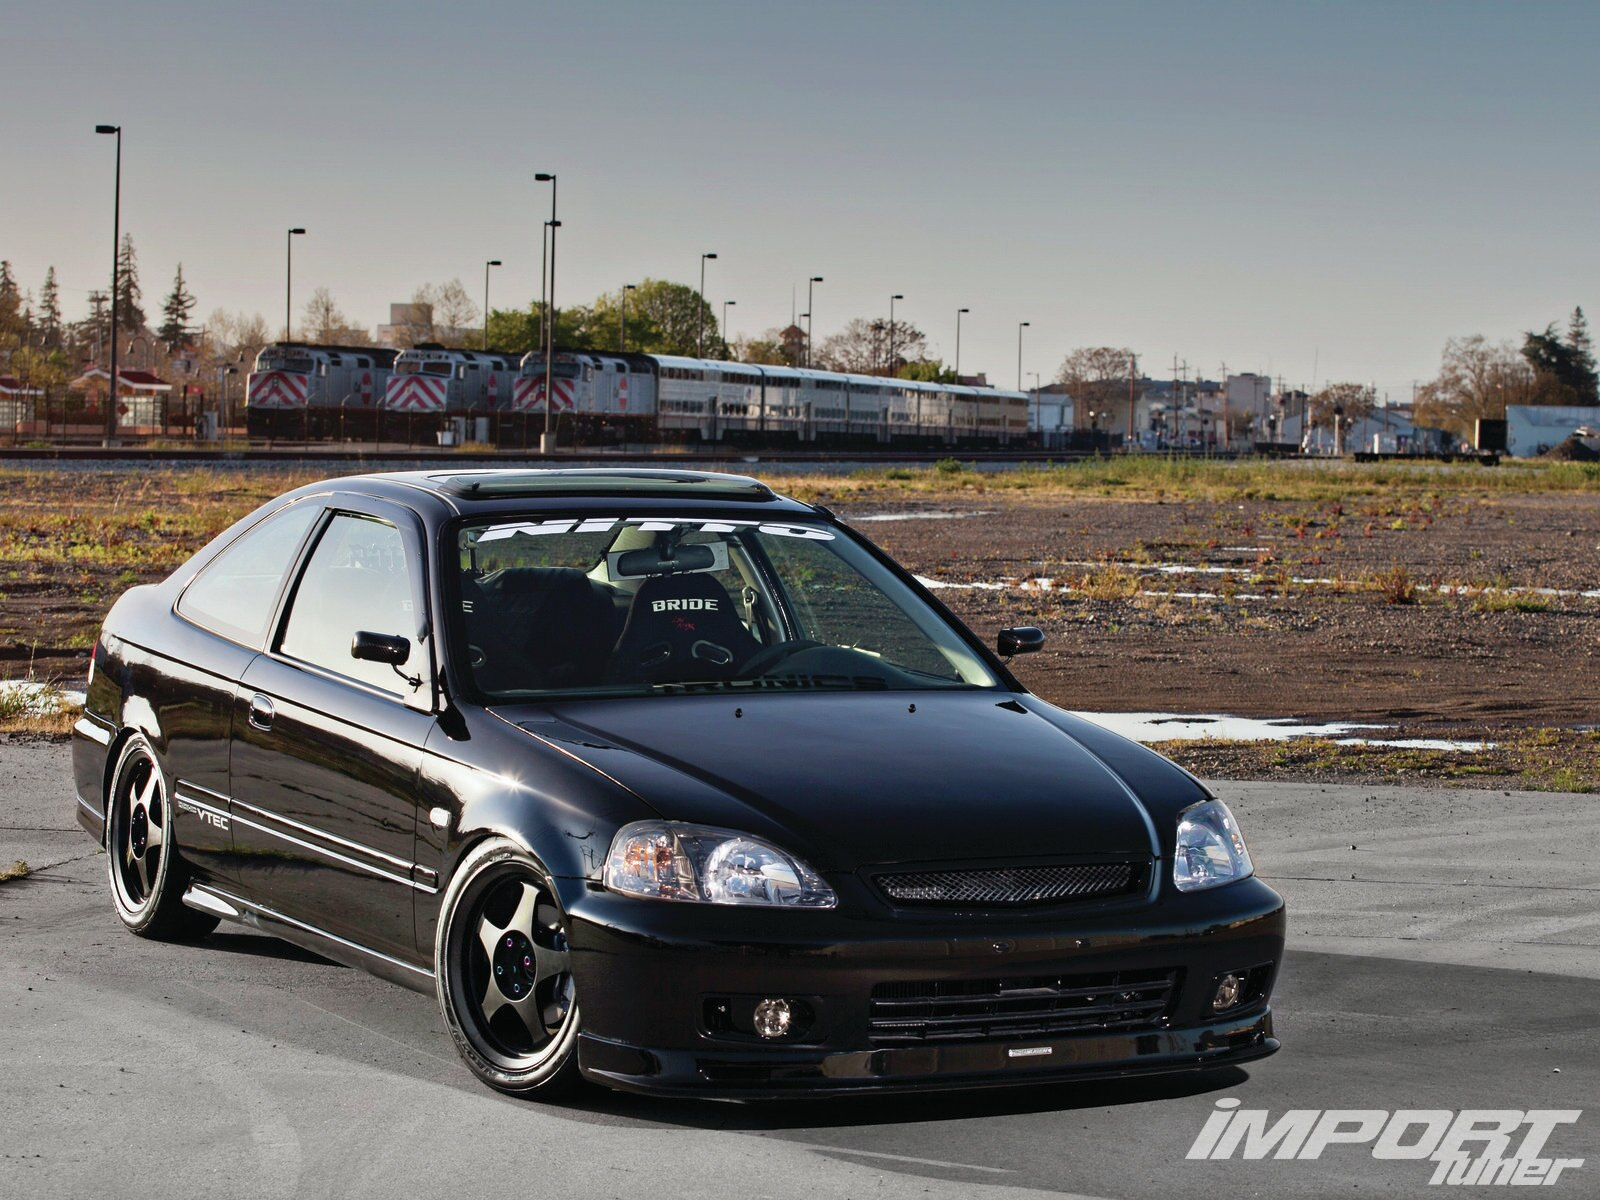 2000 Honda Civic Si Mr Clean Photo Image Gallery